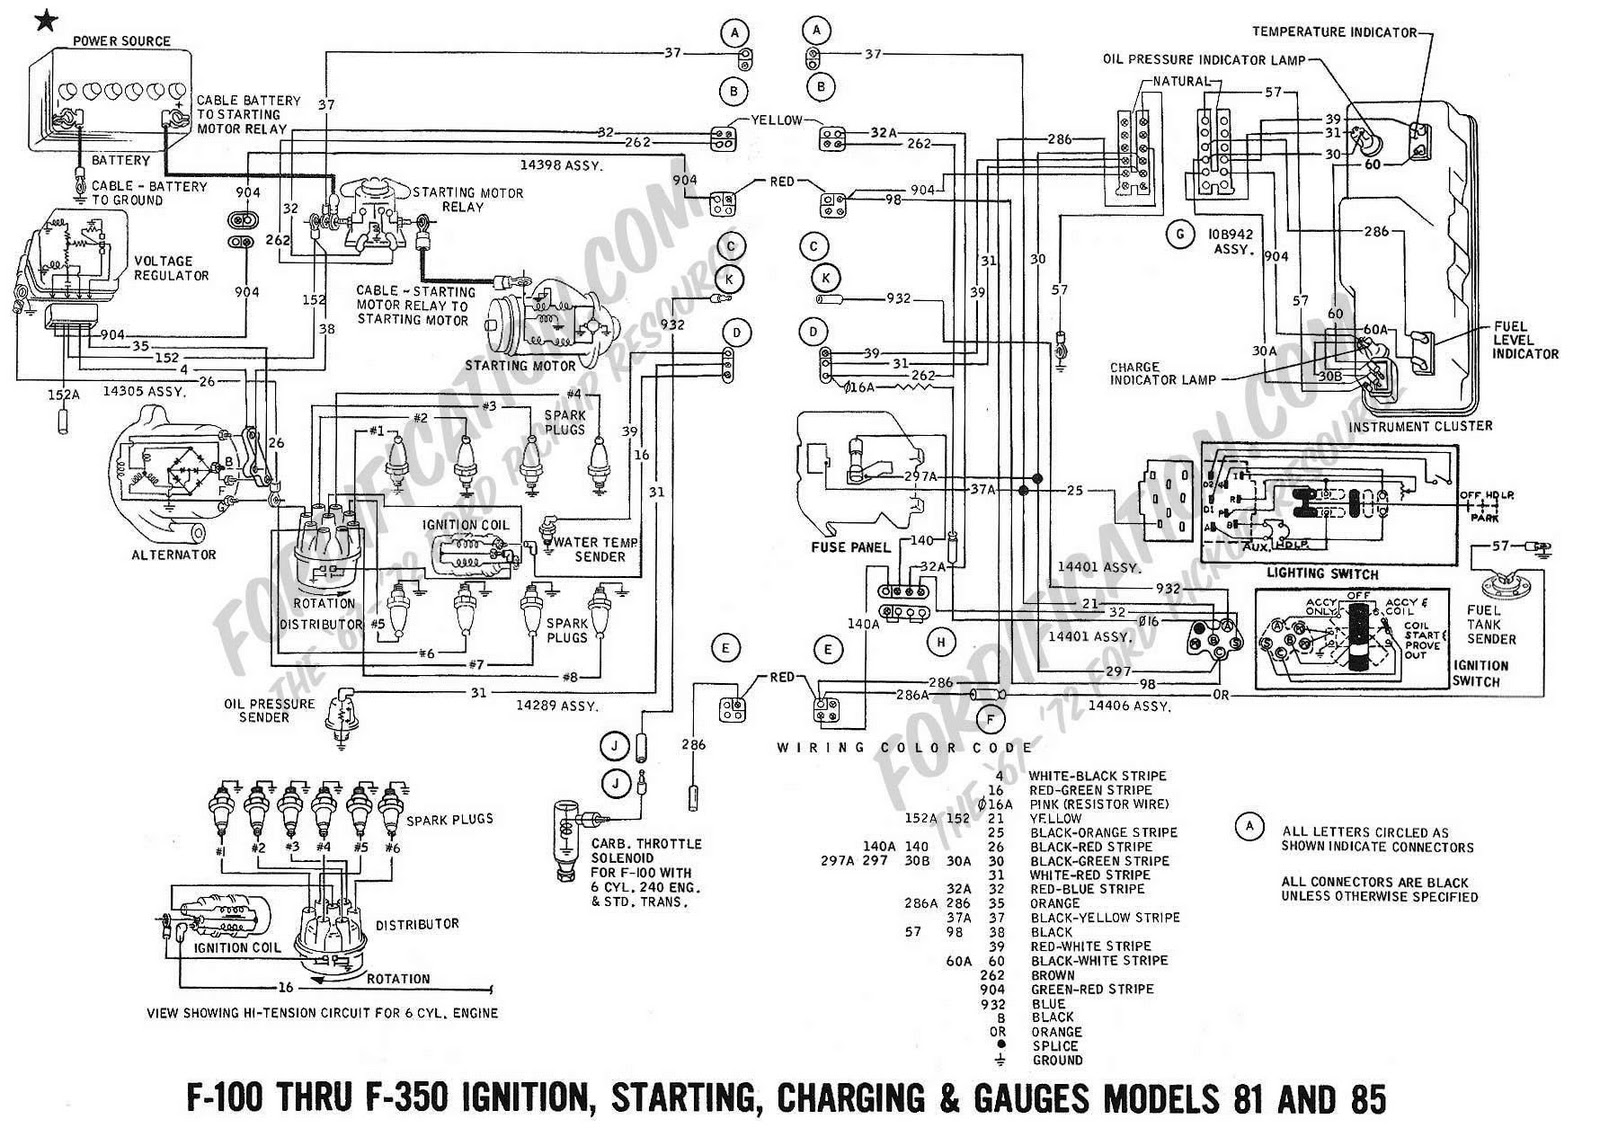 dodge electronic ignition wiring diagram 1991 club car 1969 f100 topdns organisedmum de 1967 ford f250 jajvmb danielaharde u2022 rh turn signal alternator